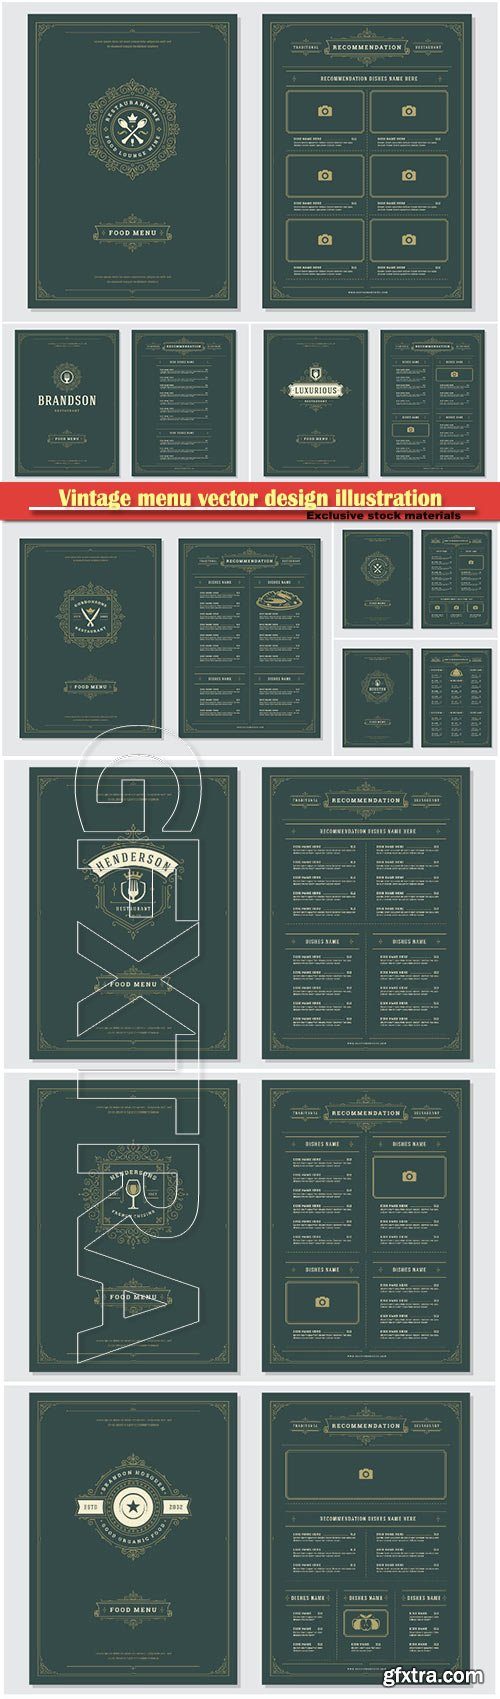 Vintage menu vector design illustration